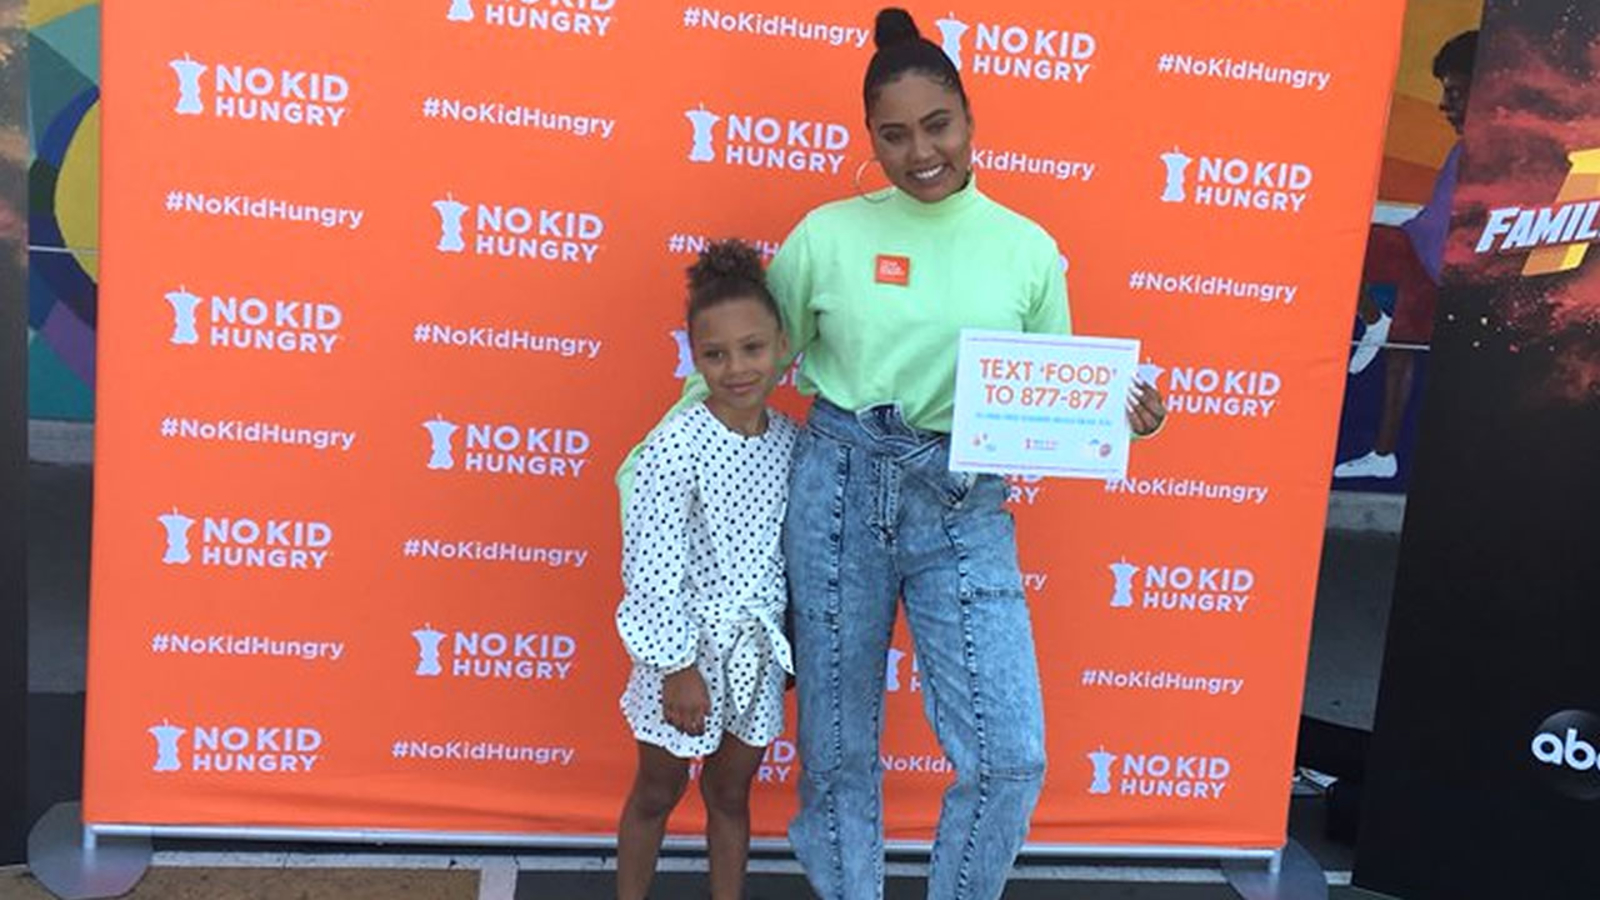 Ayesha joins forces with No Kid Hungry to raise awareness about food insecurity, child hunger